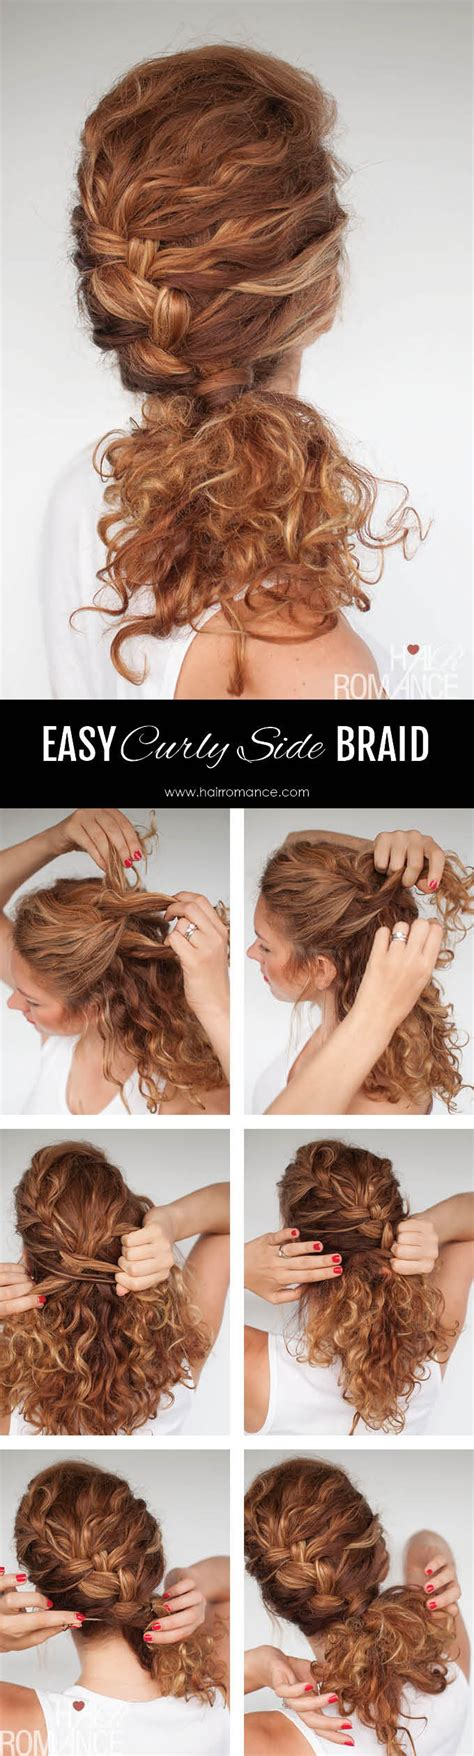 Curly Hairstyles For Tutorial by Easy Everyday Curly Hairstyle Tutorials The Curly Side Braid